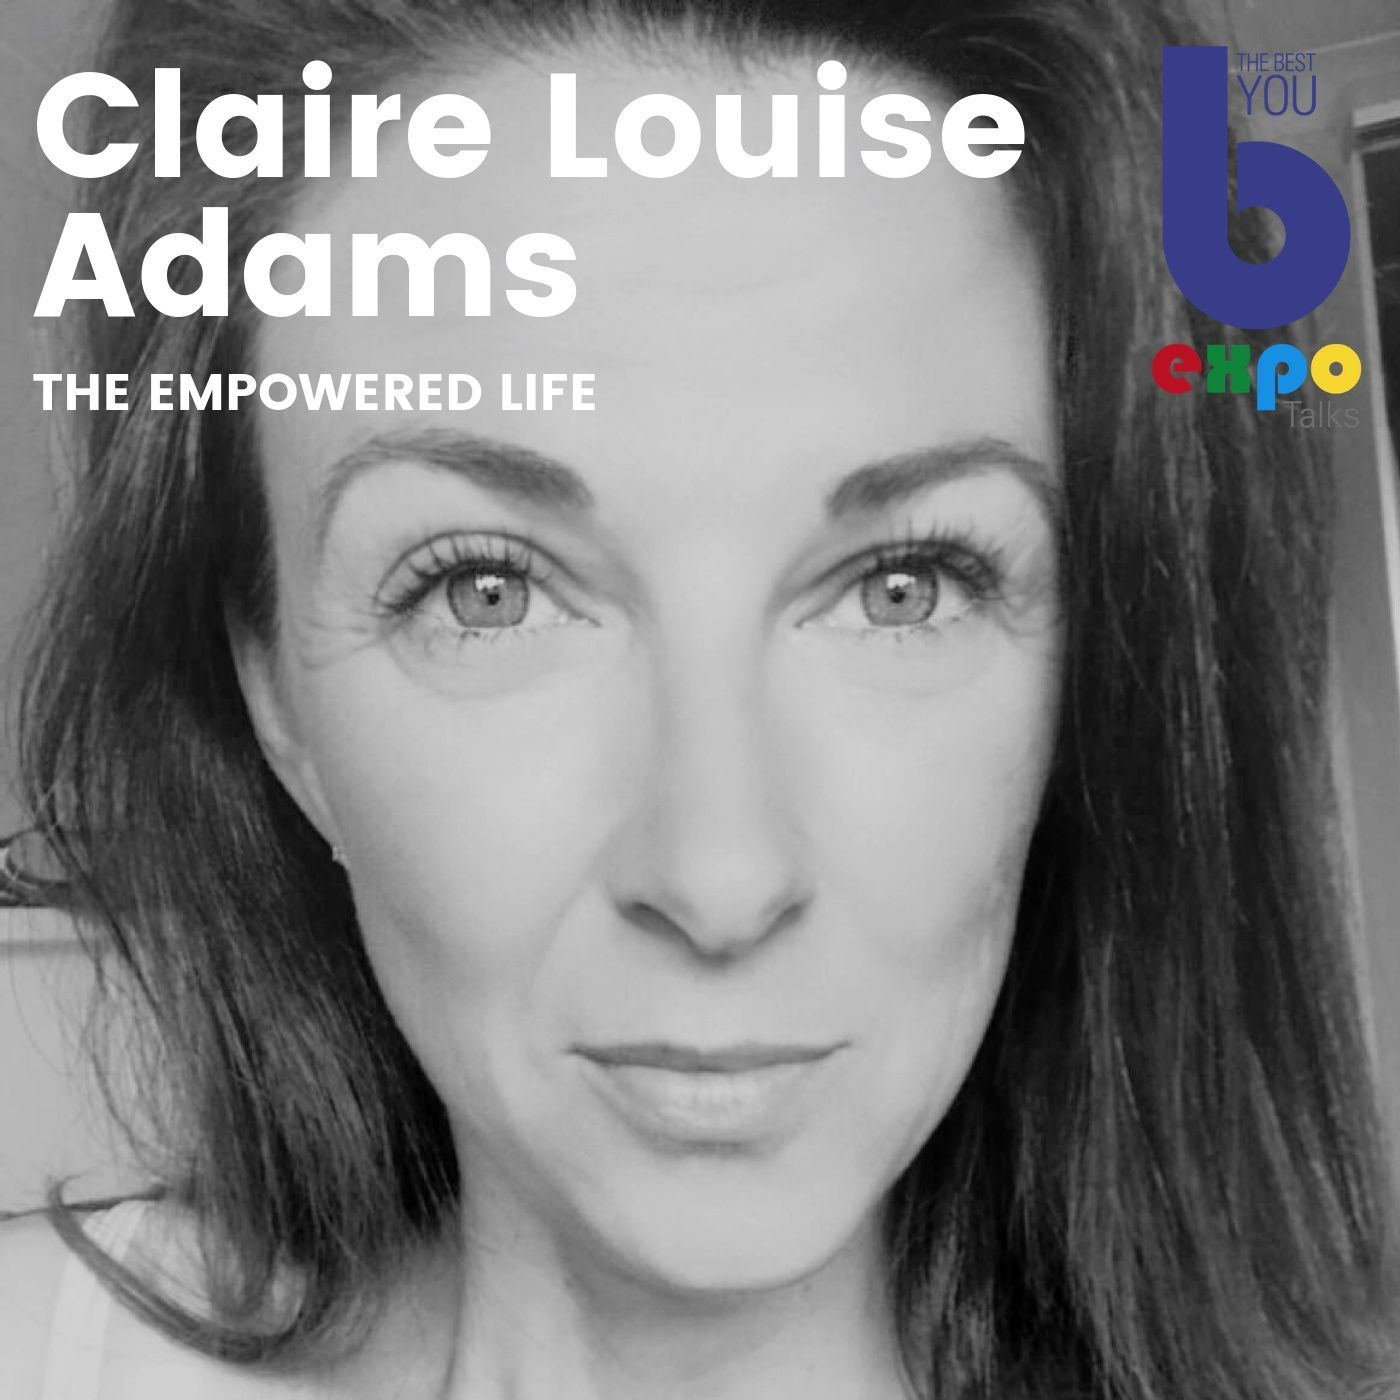 Listen to Claire Louise Adams at The Best You EXPO